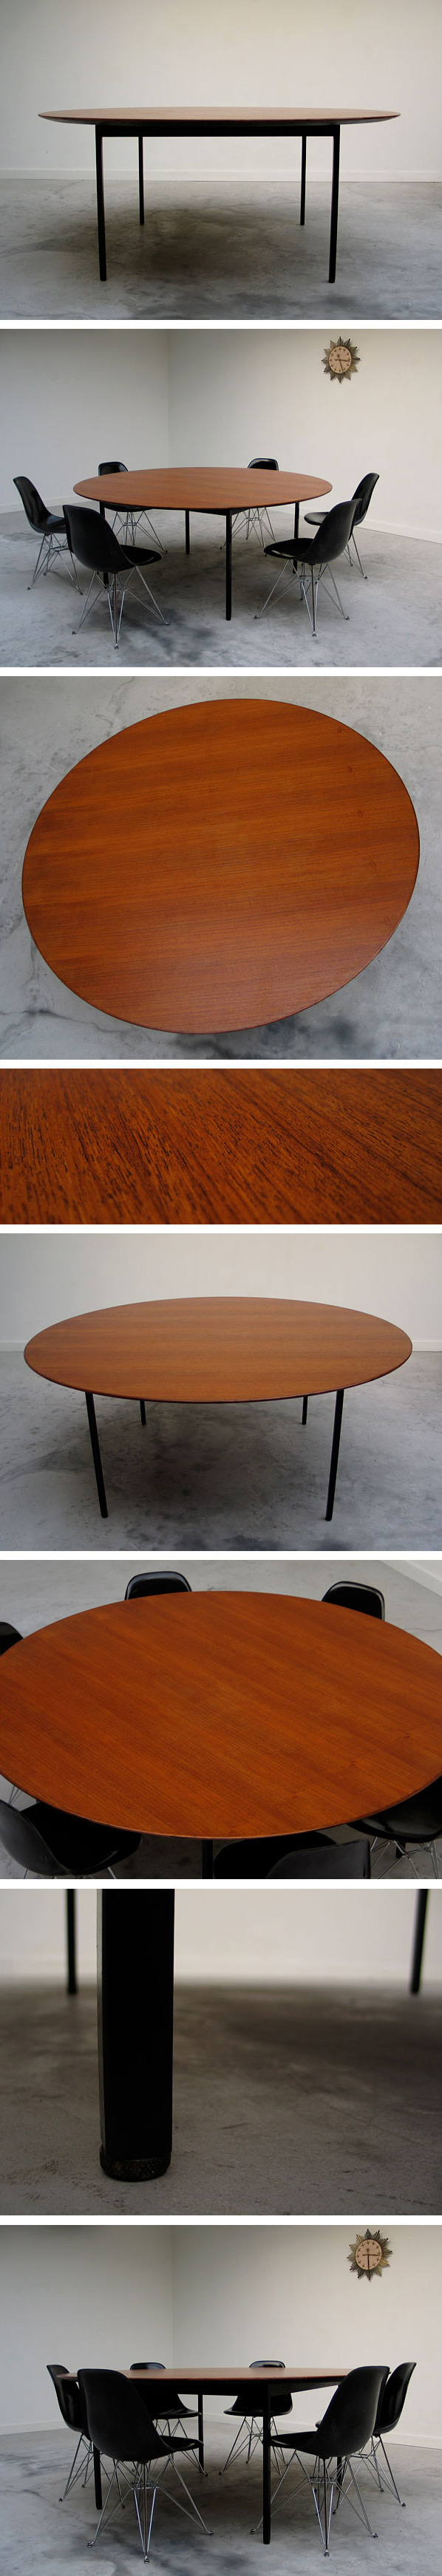 Florence Knoll Executive round conference dining table Large